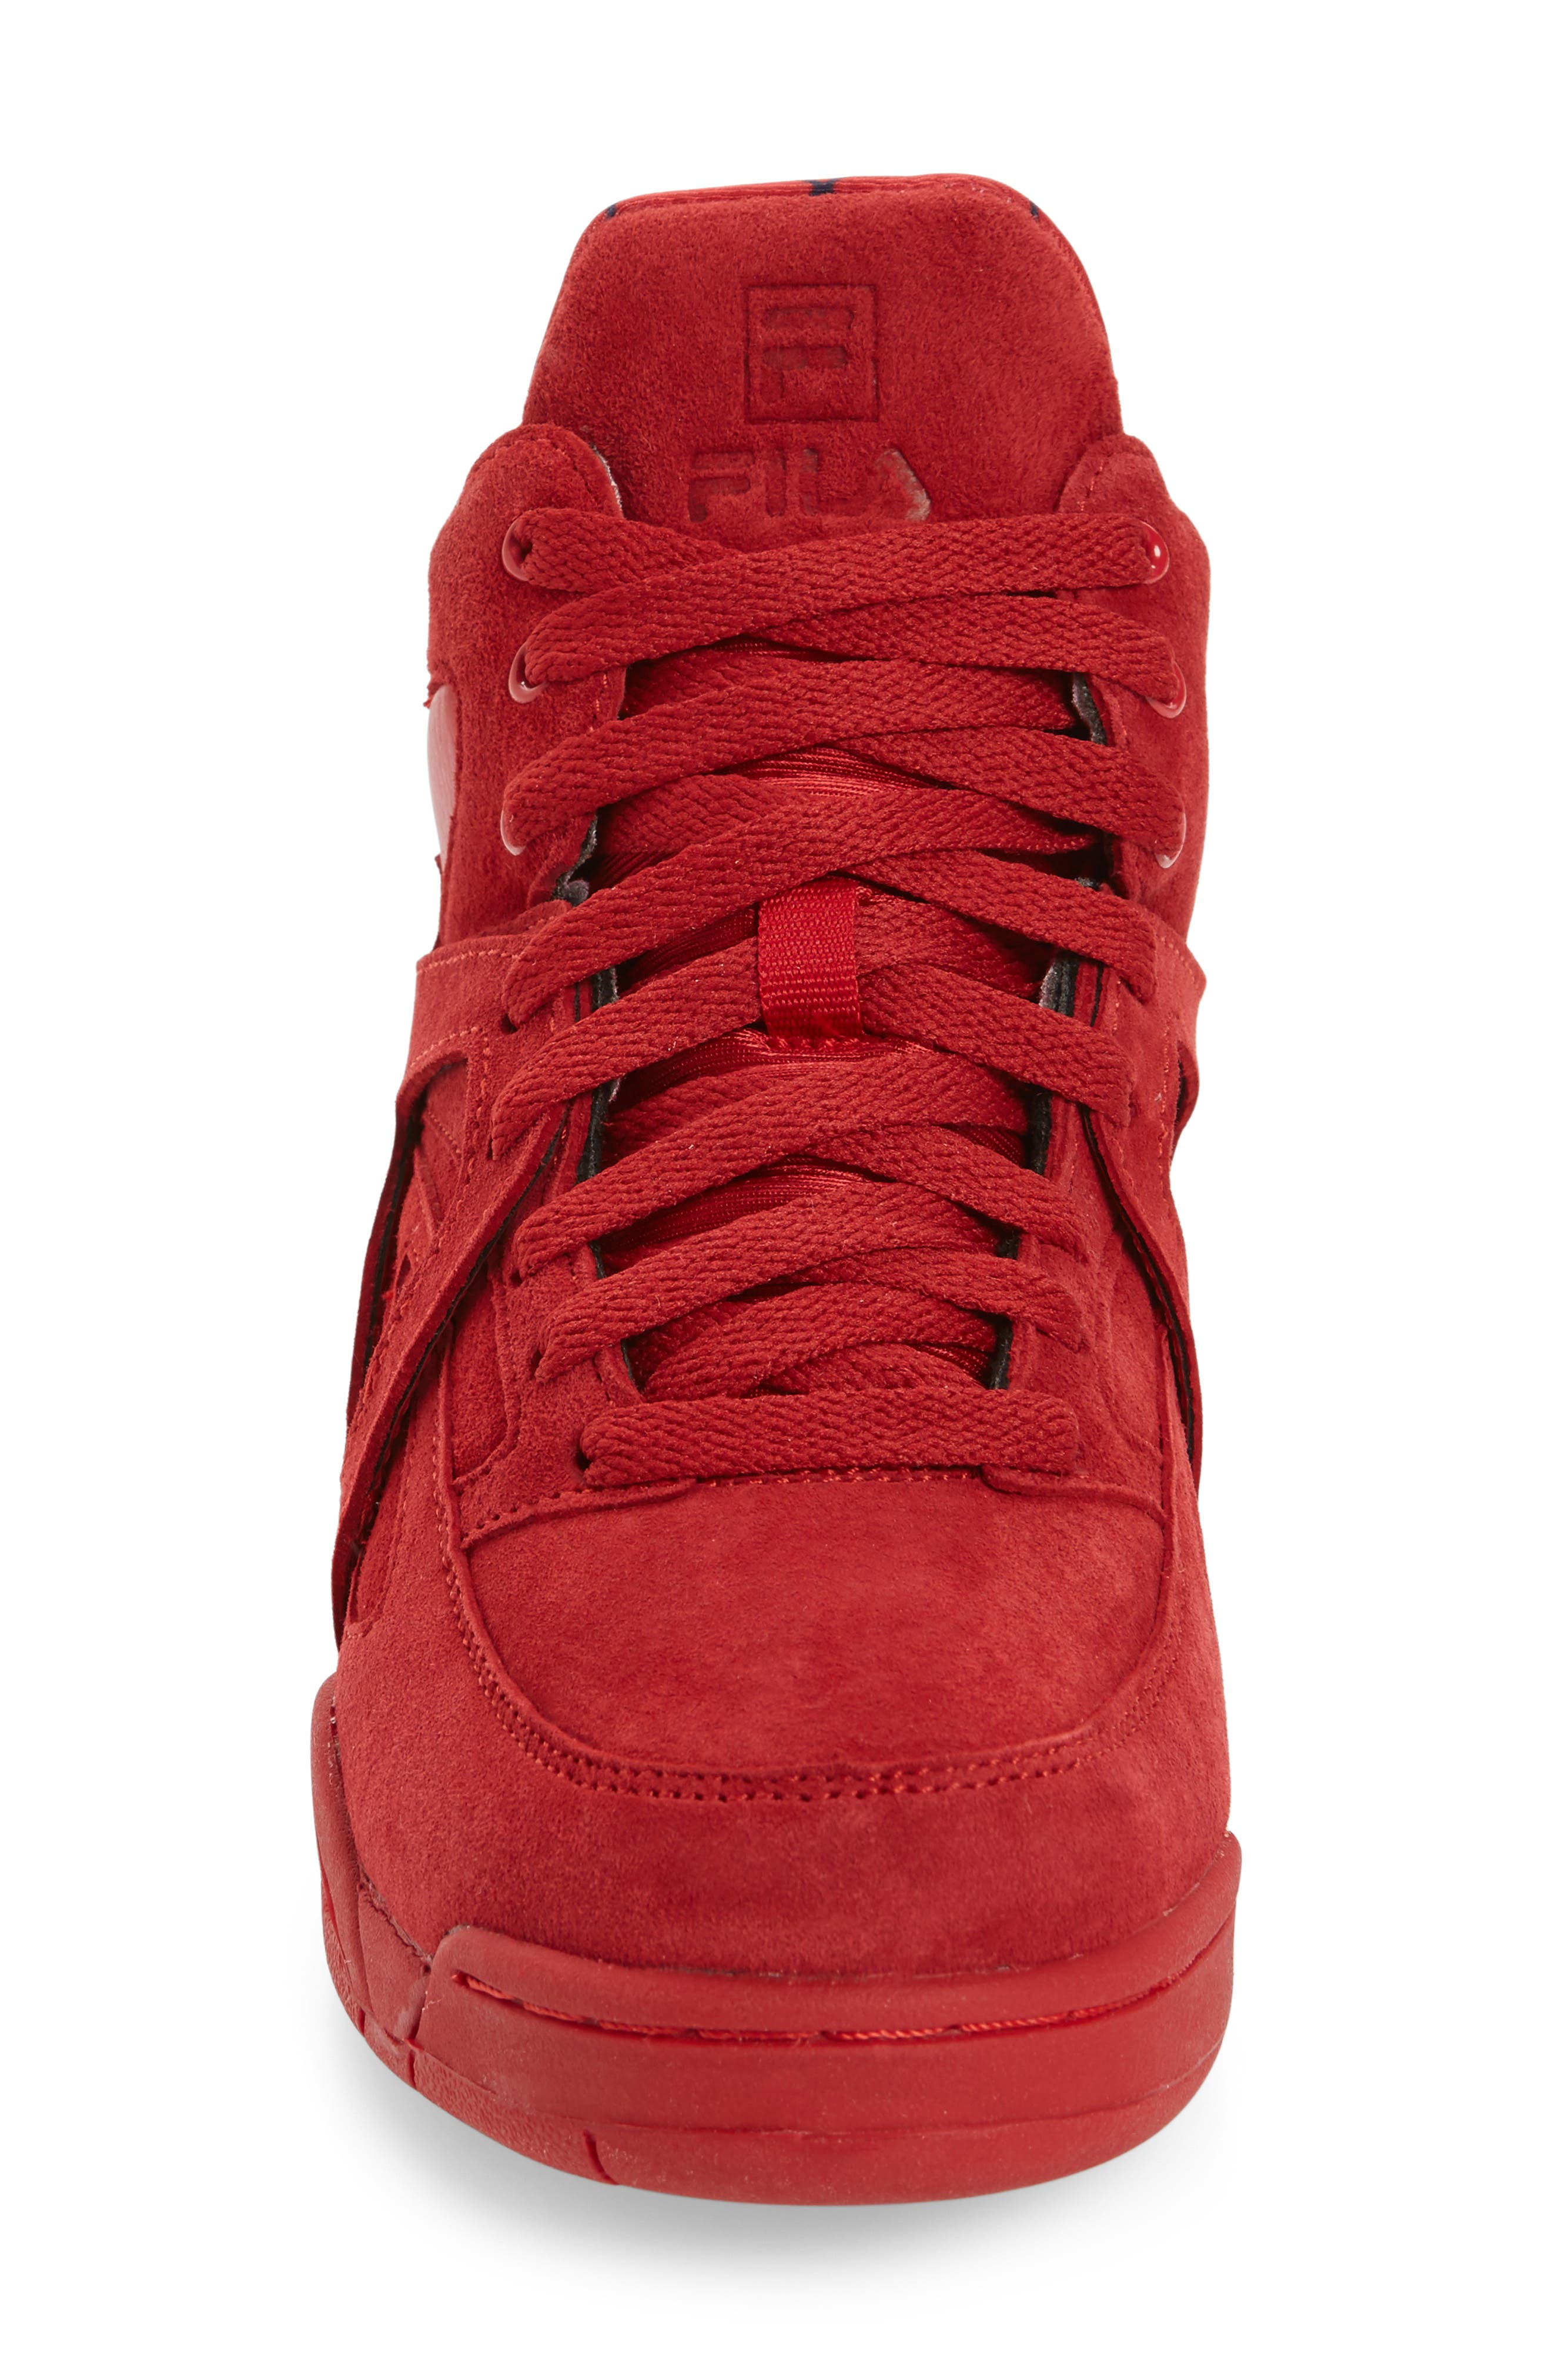 FILA, The Cage High Top Sneaker, Alternate thumbnail 3, color, RED SUEDE